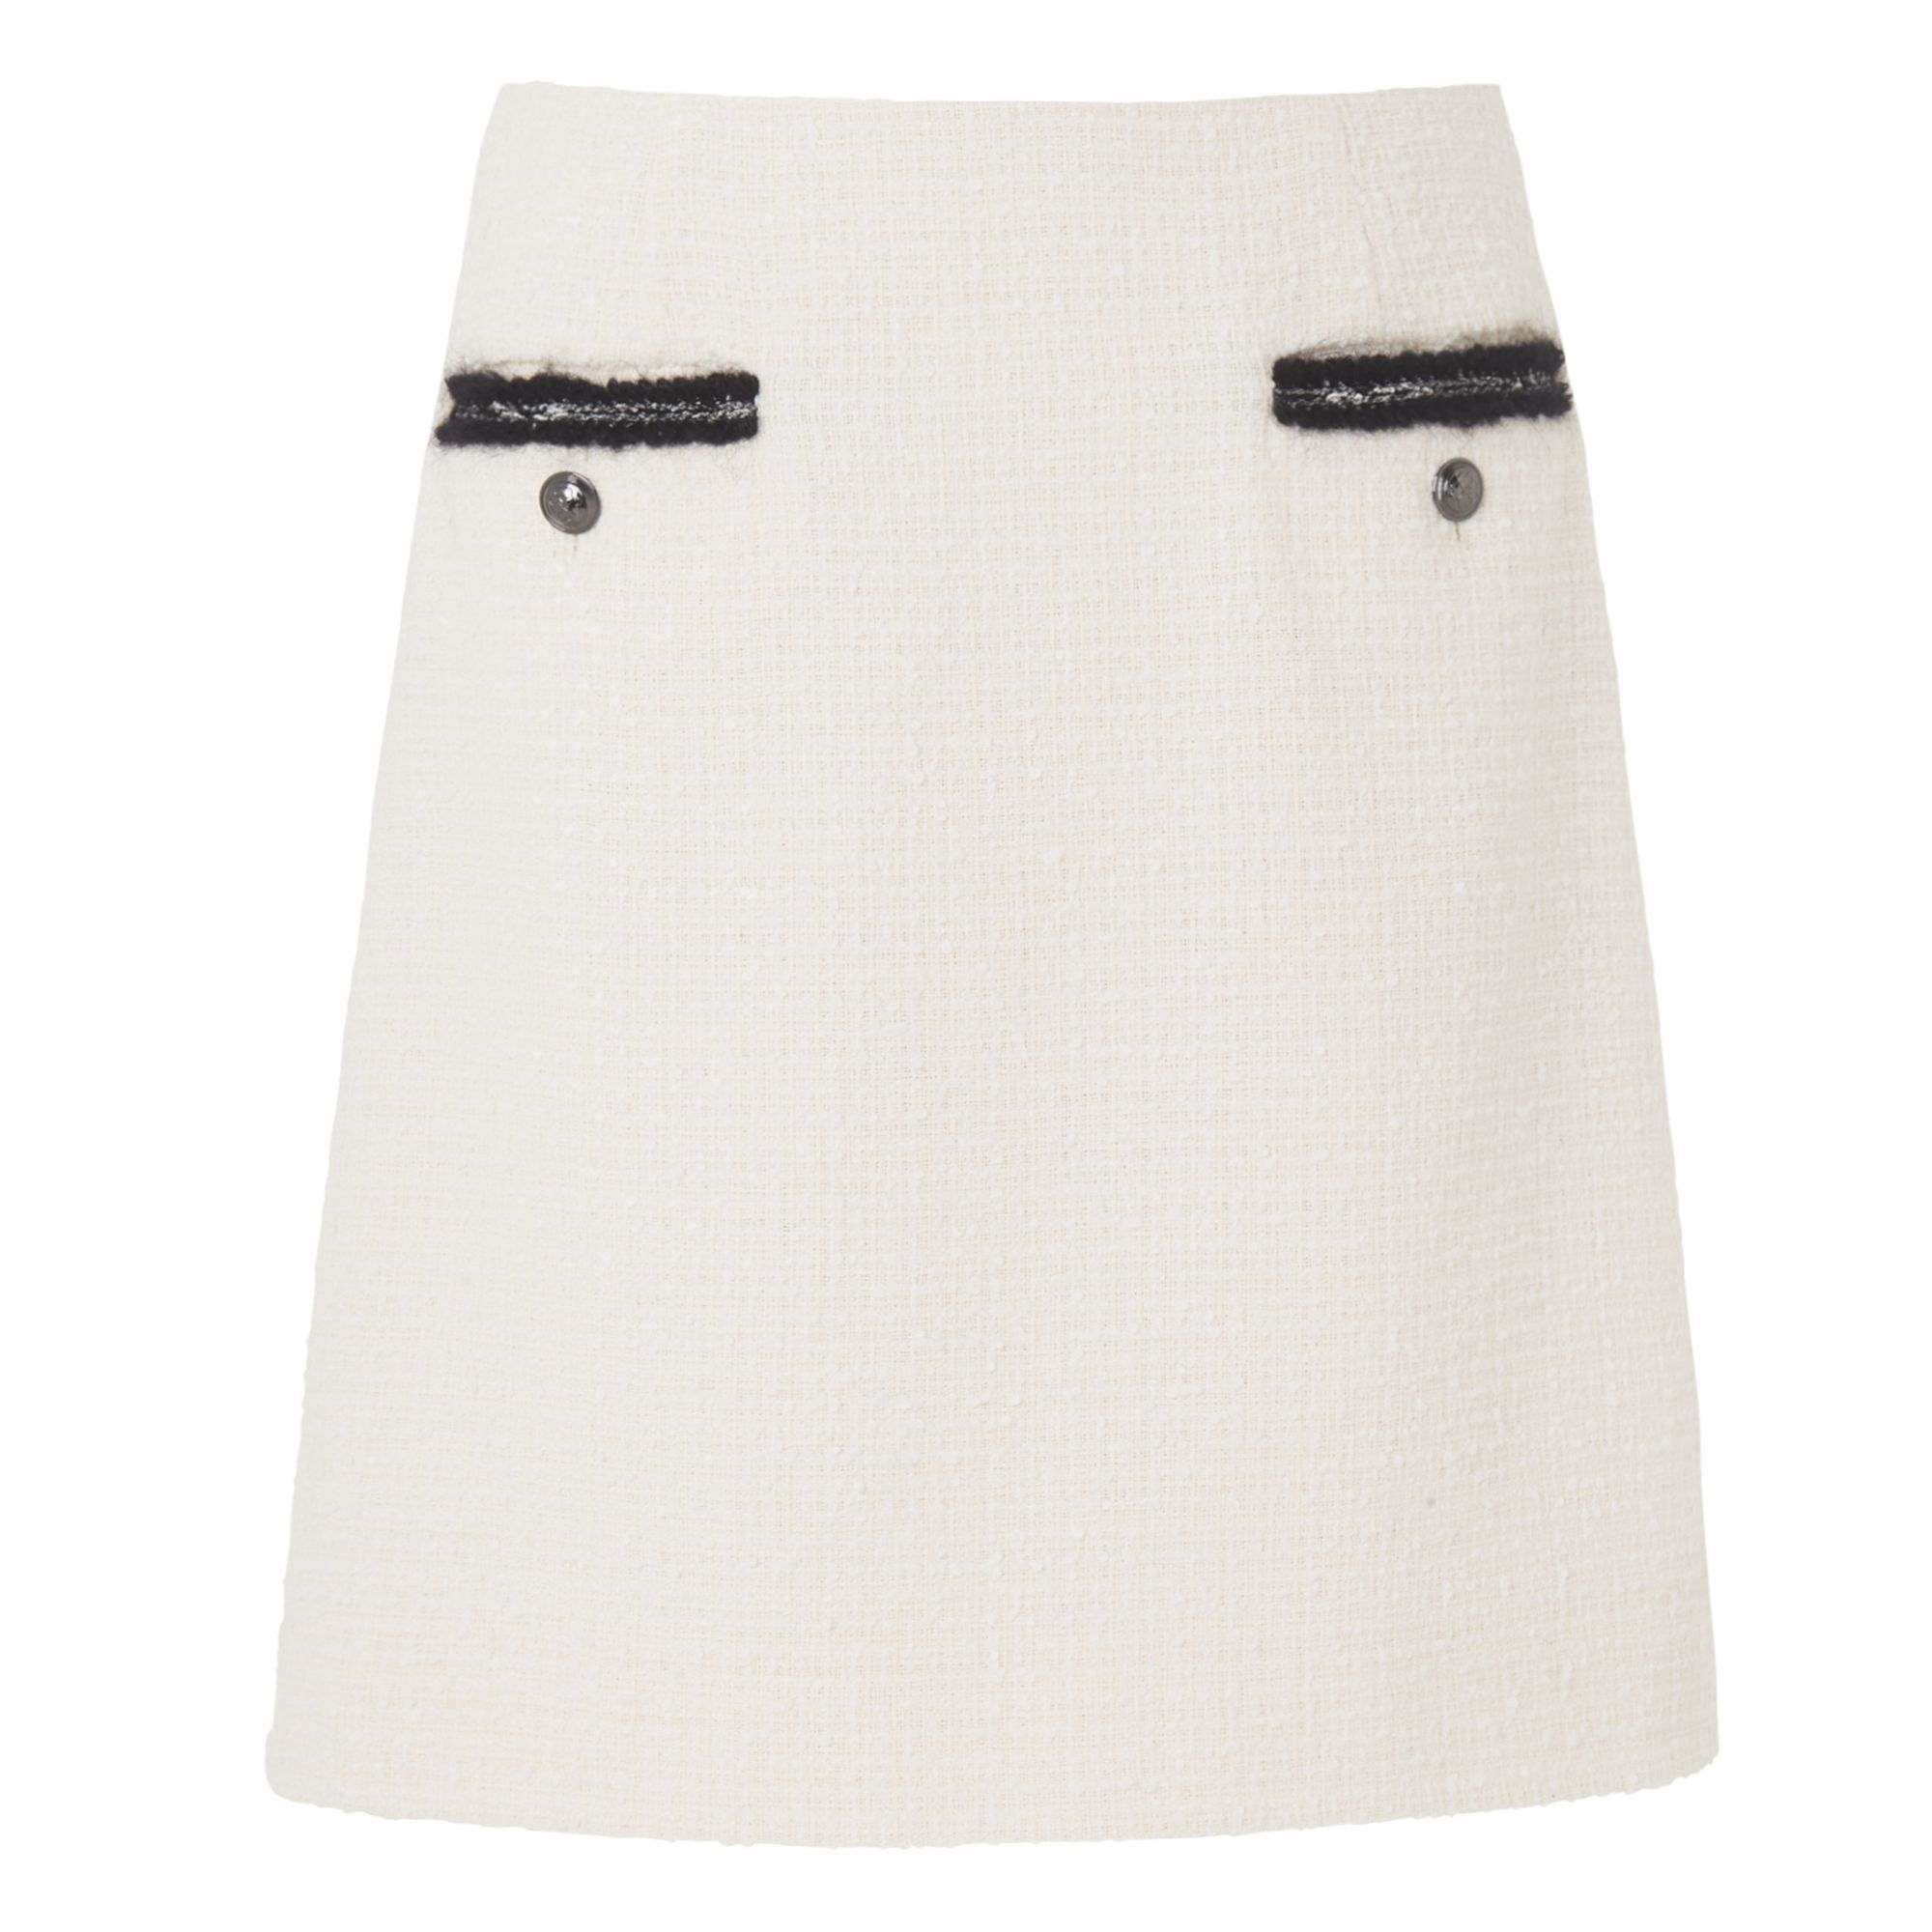 L.K. Bennett Charl Black Tweed Skirt, Cream